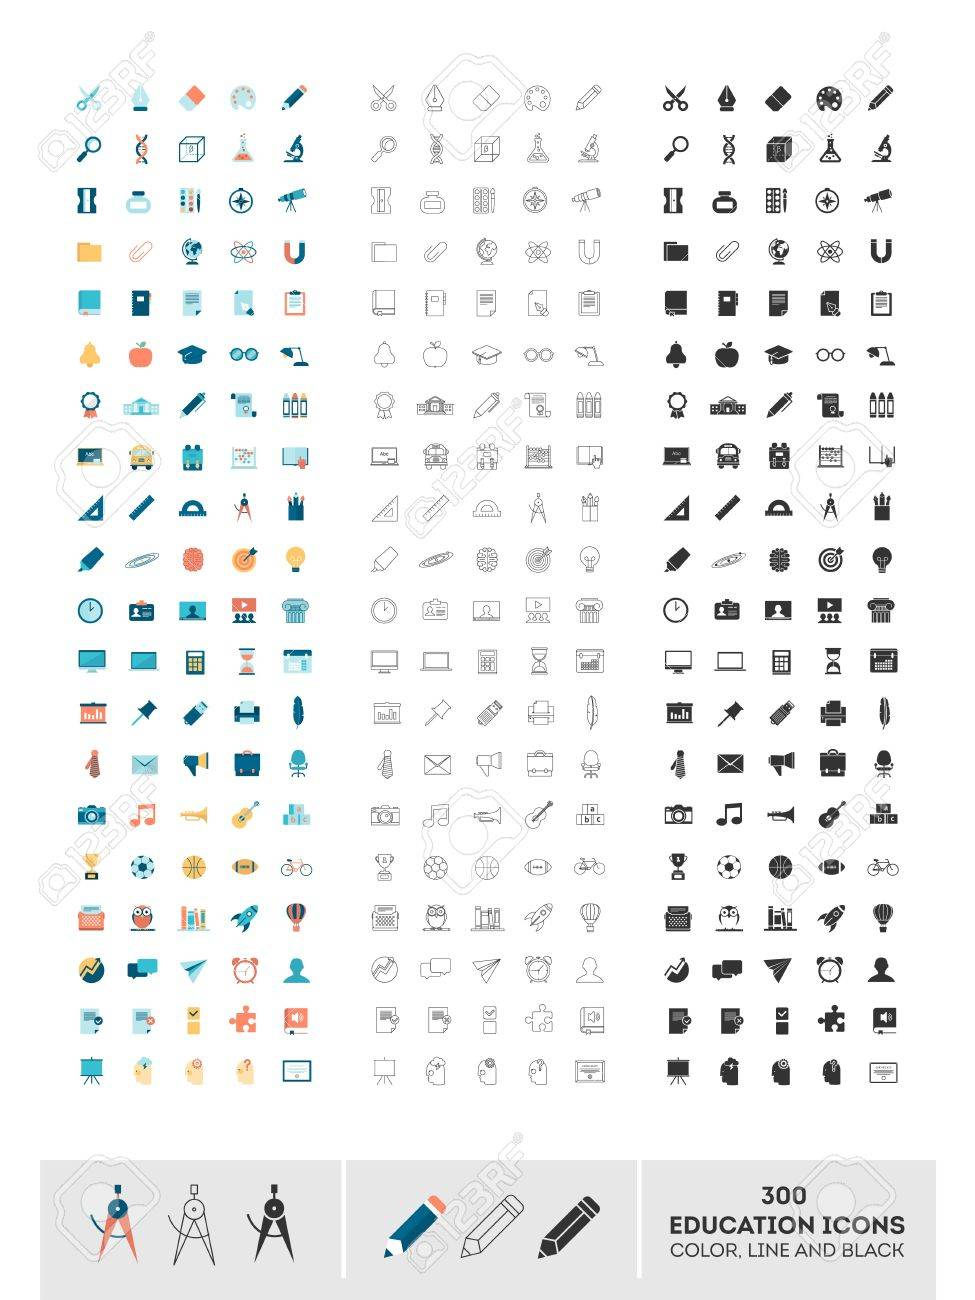 set of 300 education icons made in color, line and black, illustration - 37261689